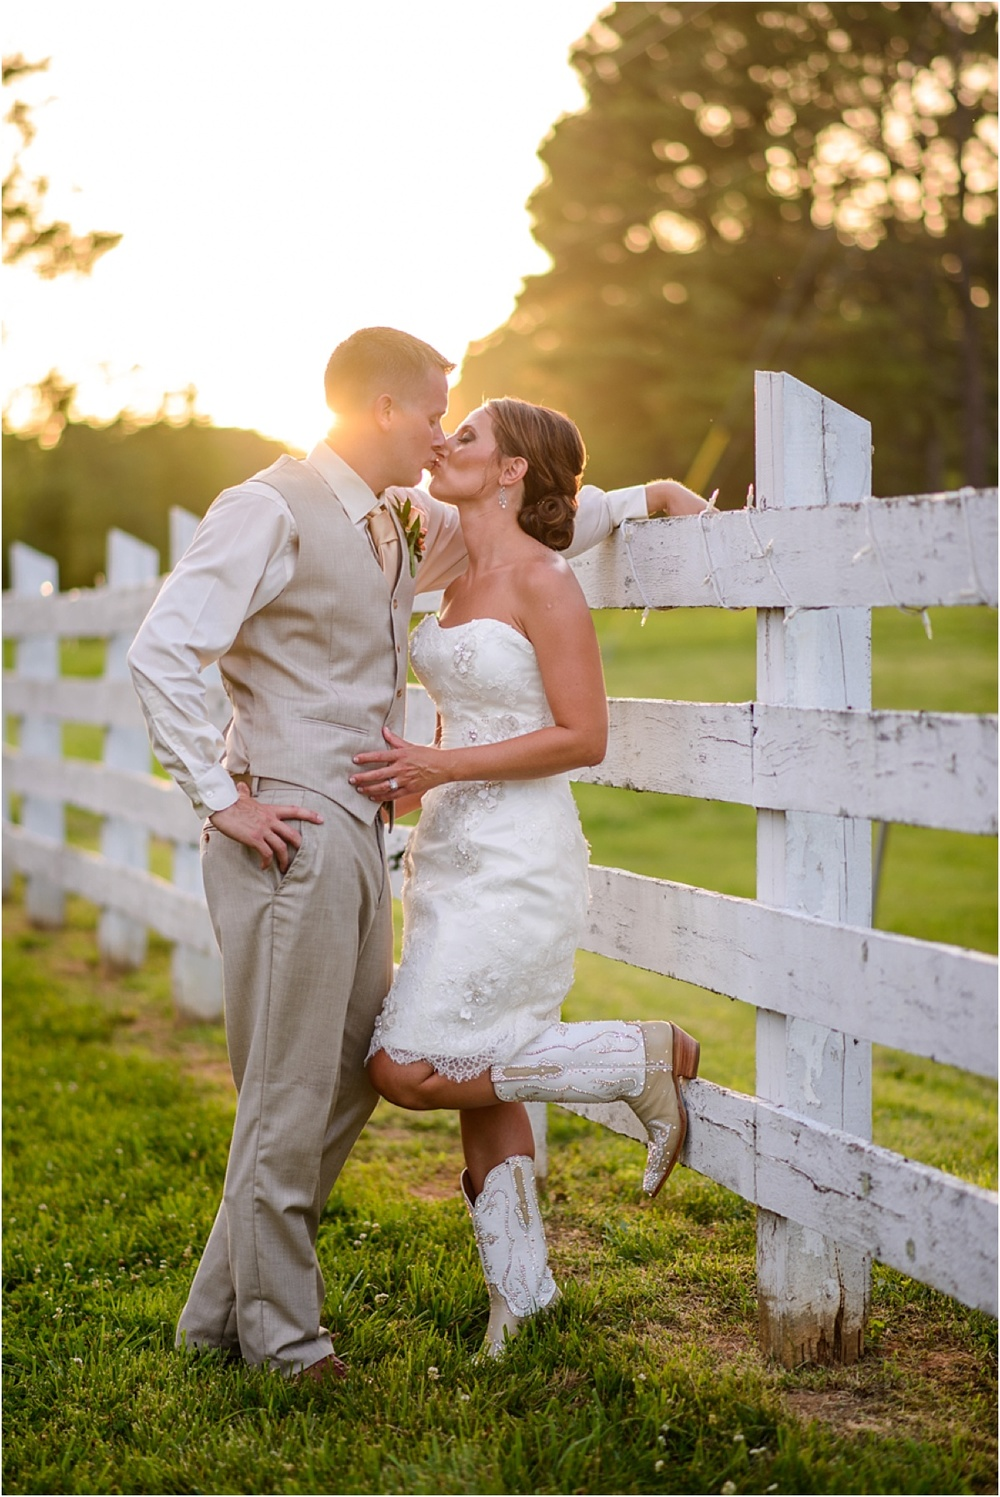 Greg Smit Photography Tennessee wedding photographer Salt Box Inn_0025